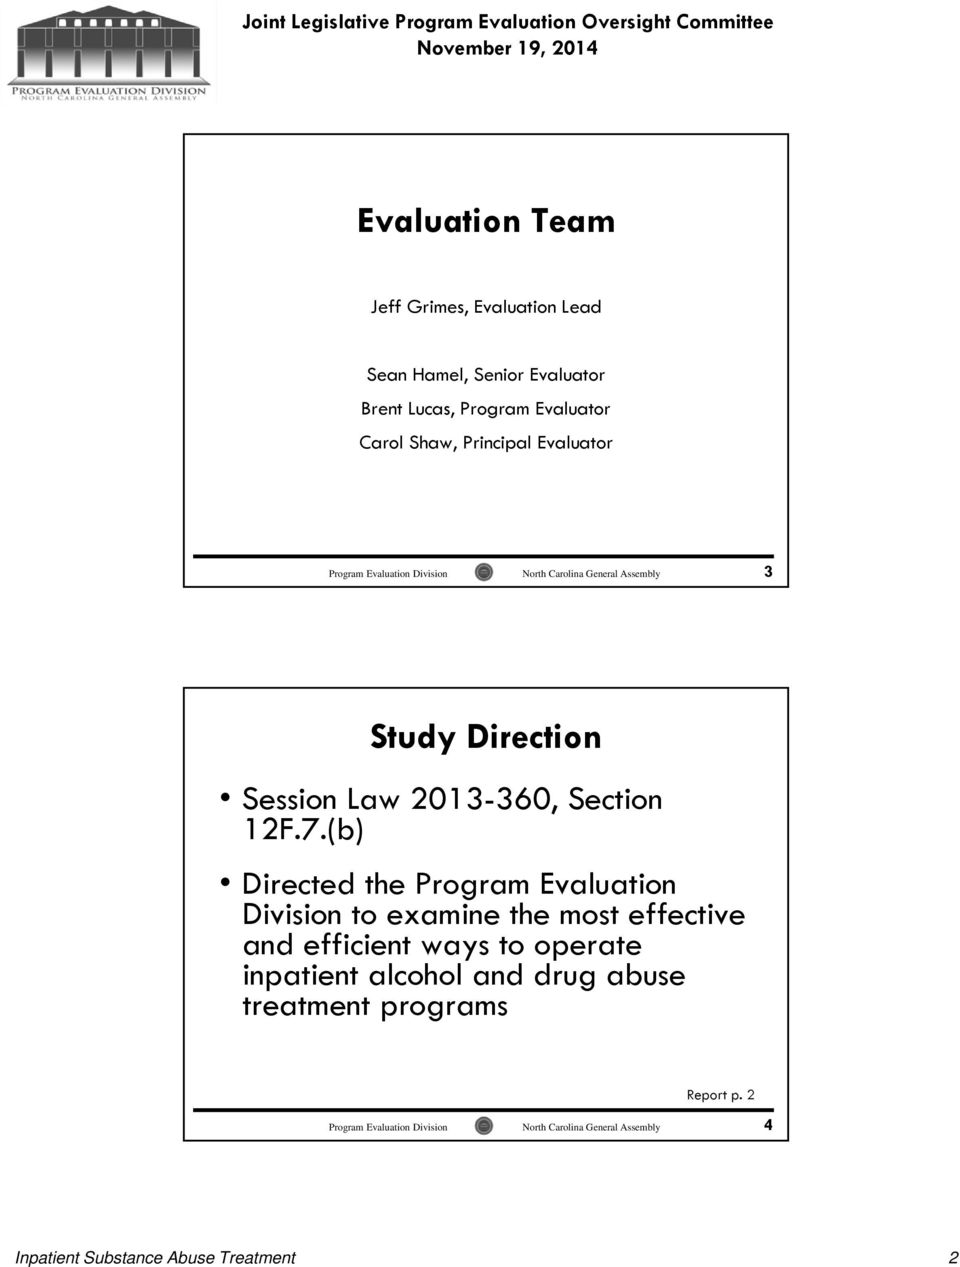 (b) Directed the Program Evaluation Division to examine the most effective and efficient ways to